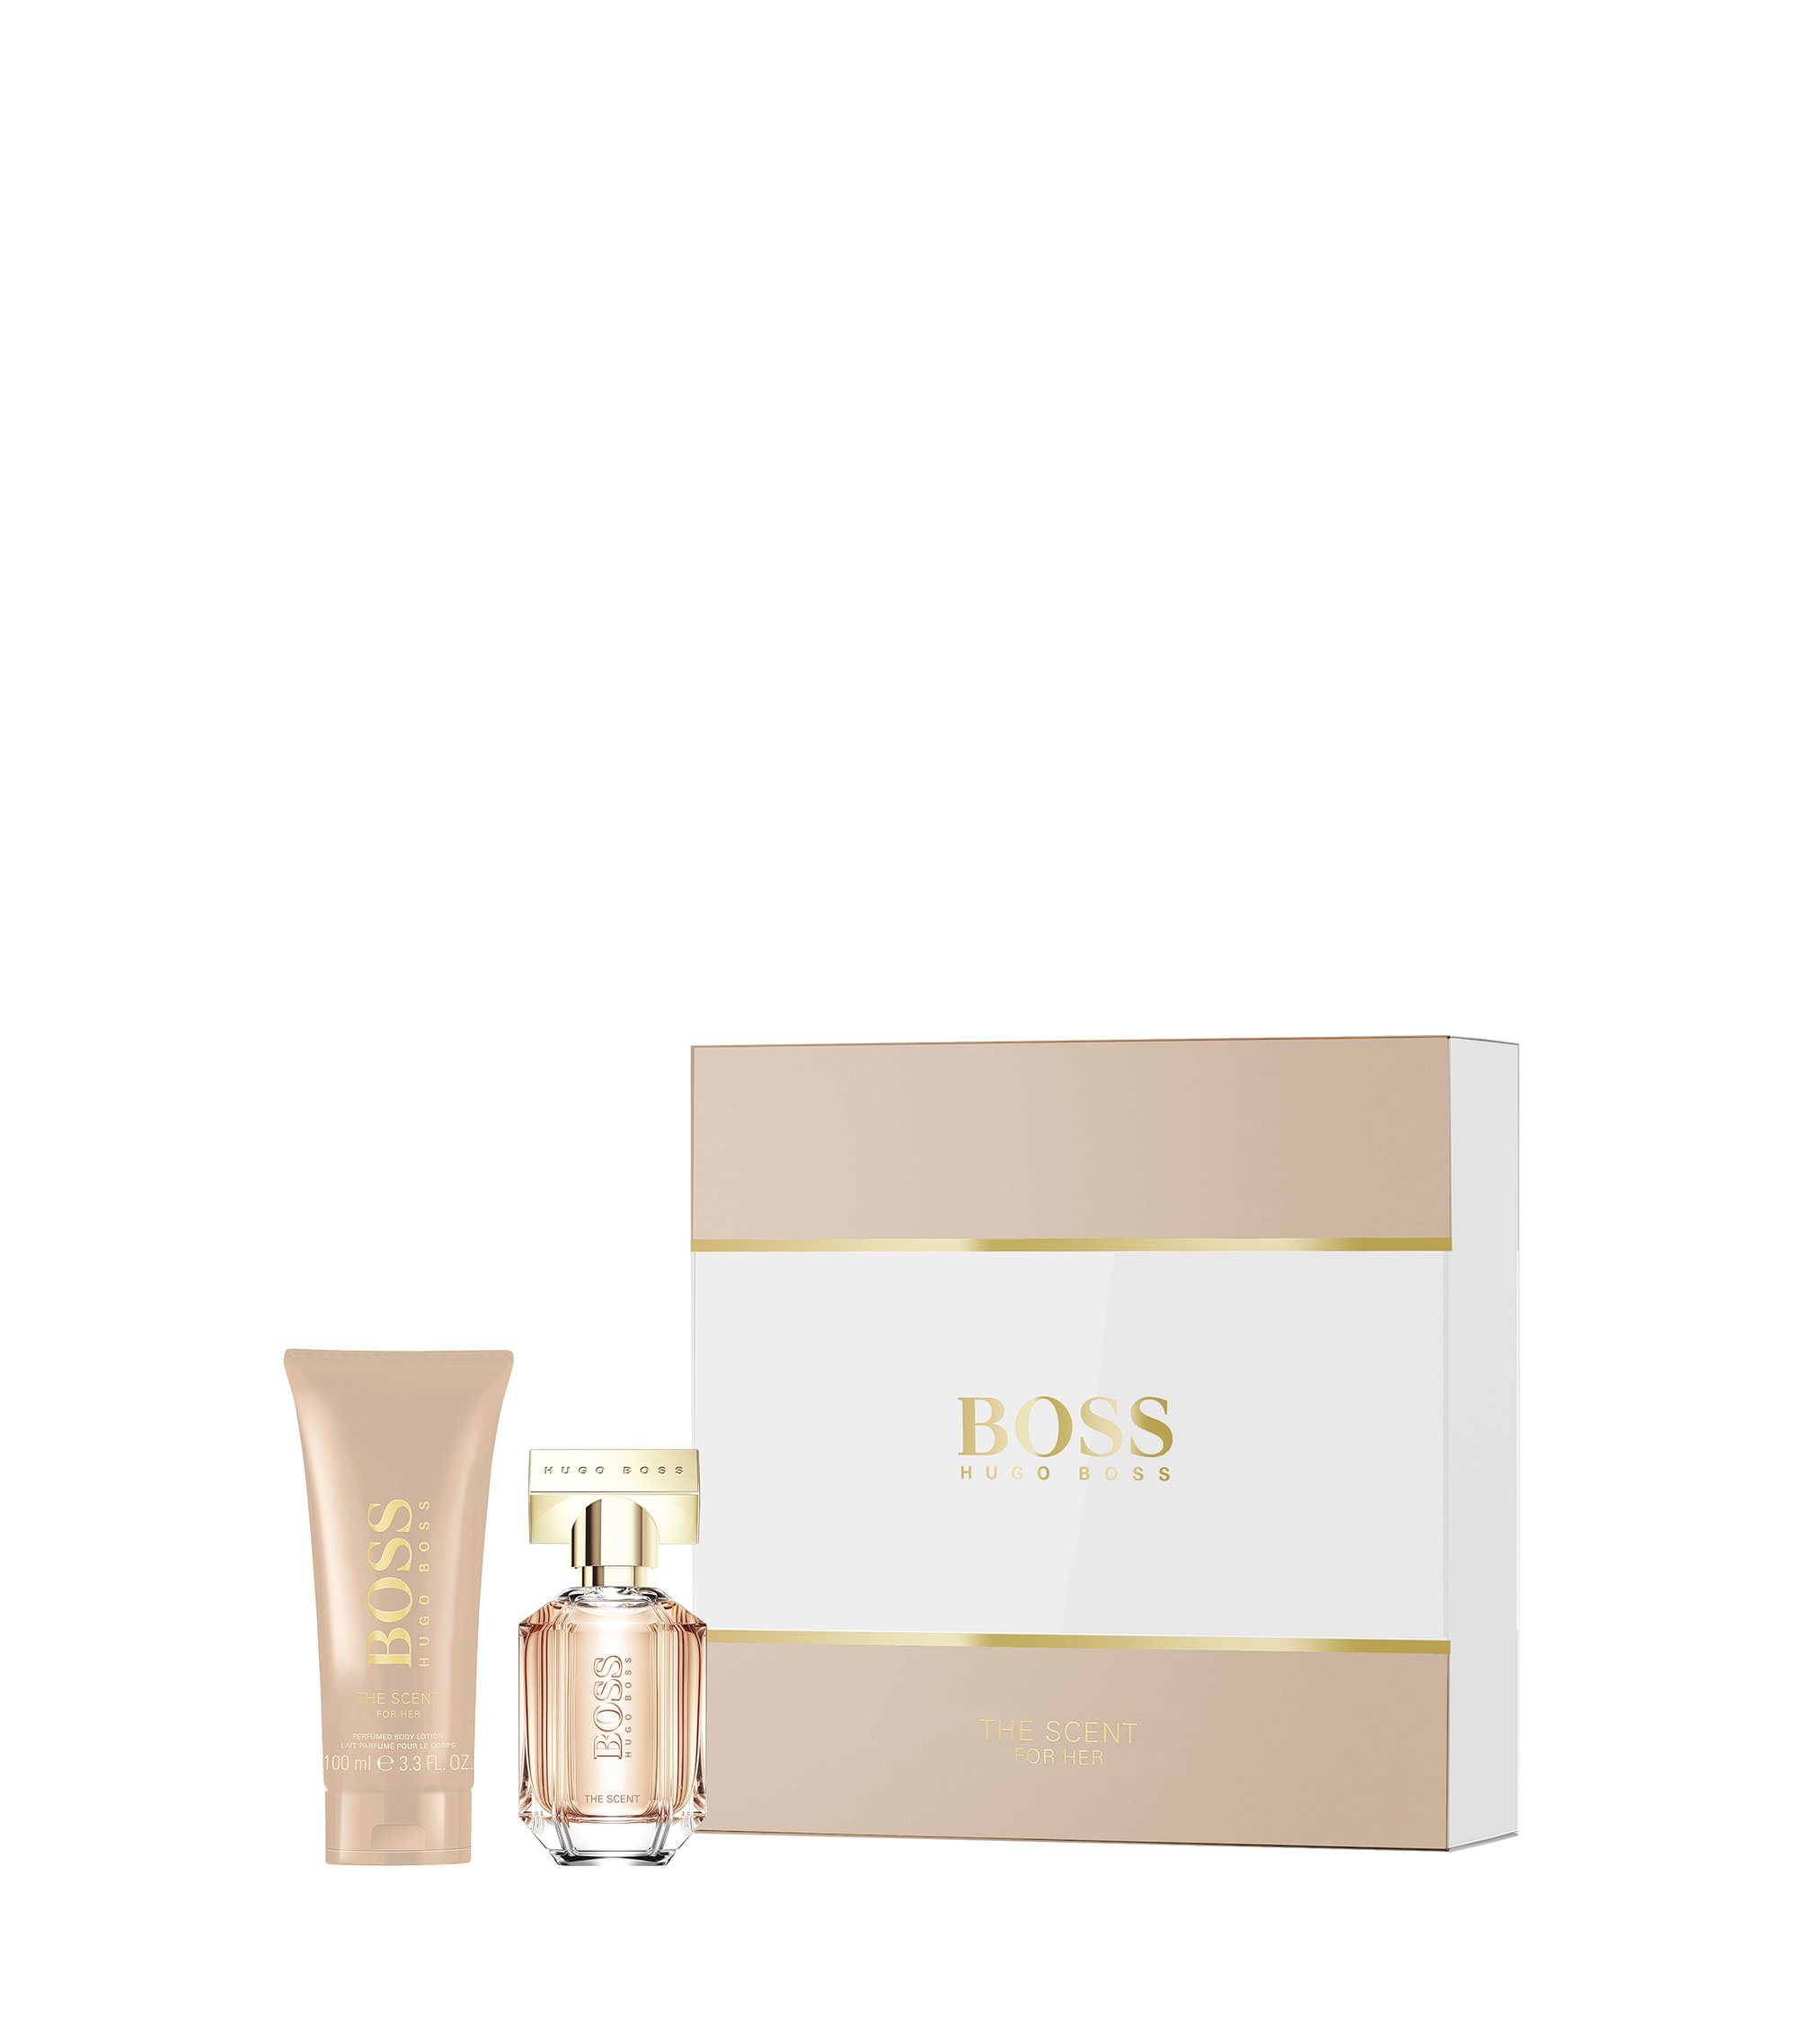 Set with 'BOSS The Scent for Her' Eau de Parfum 30 ml and Body Lotion, Assorted-Pre-Pack